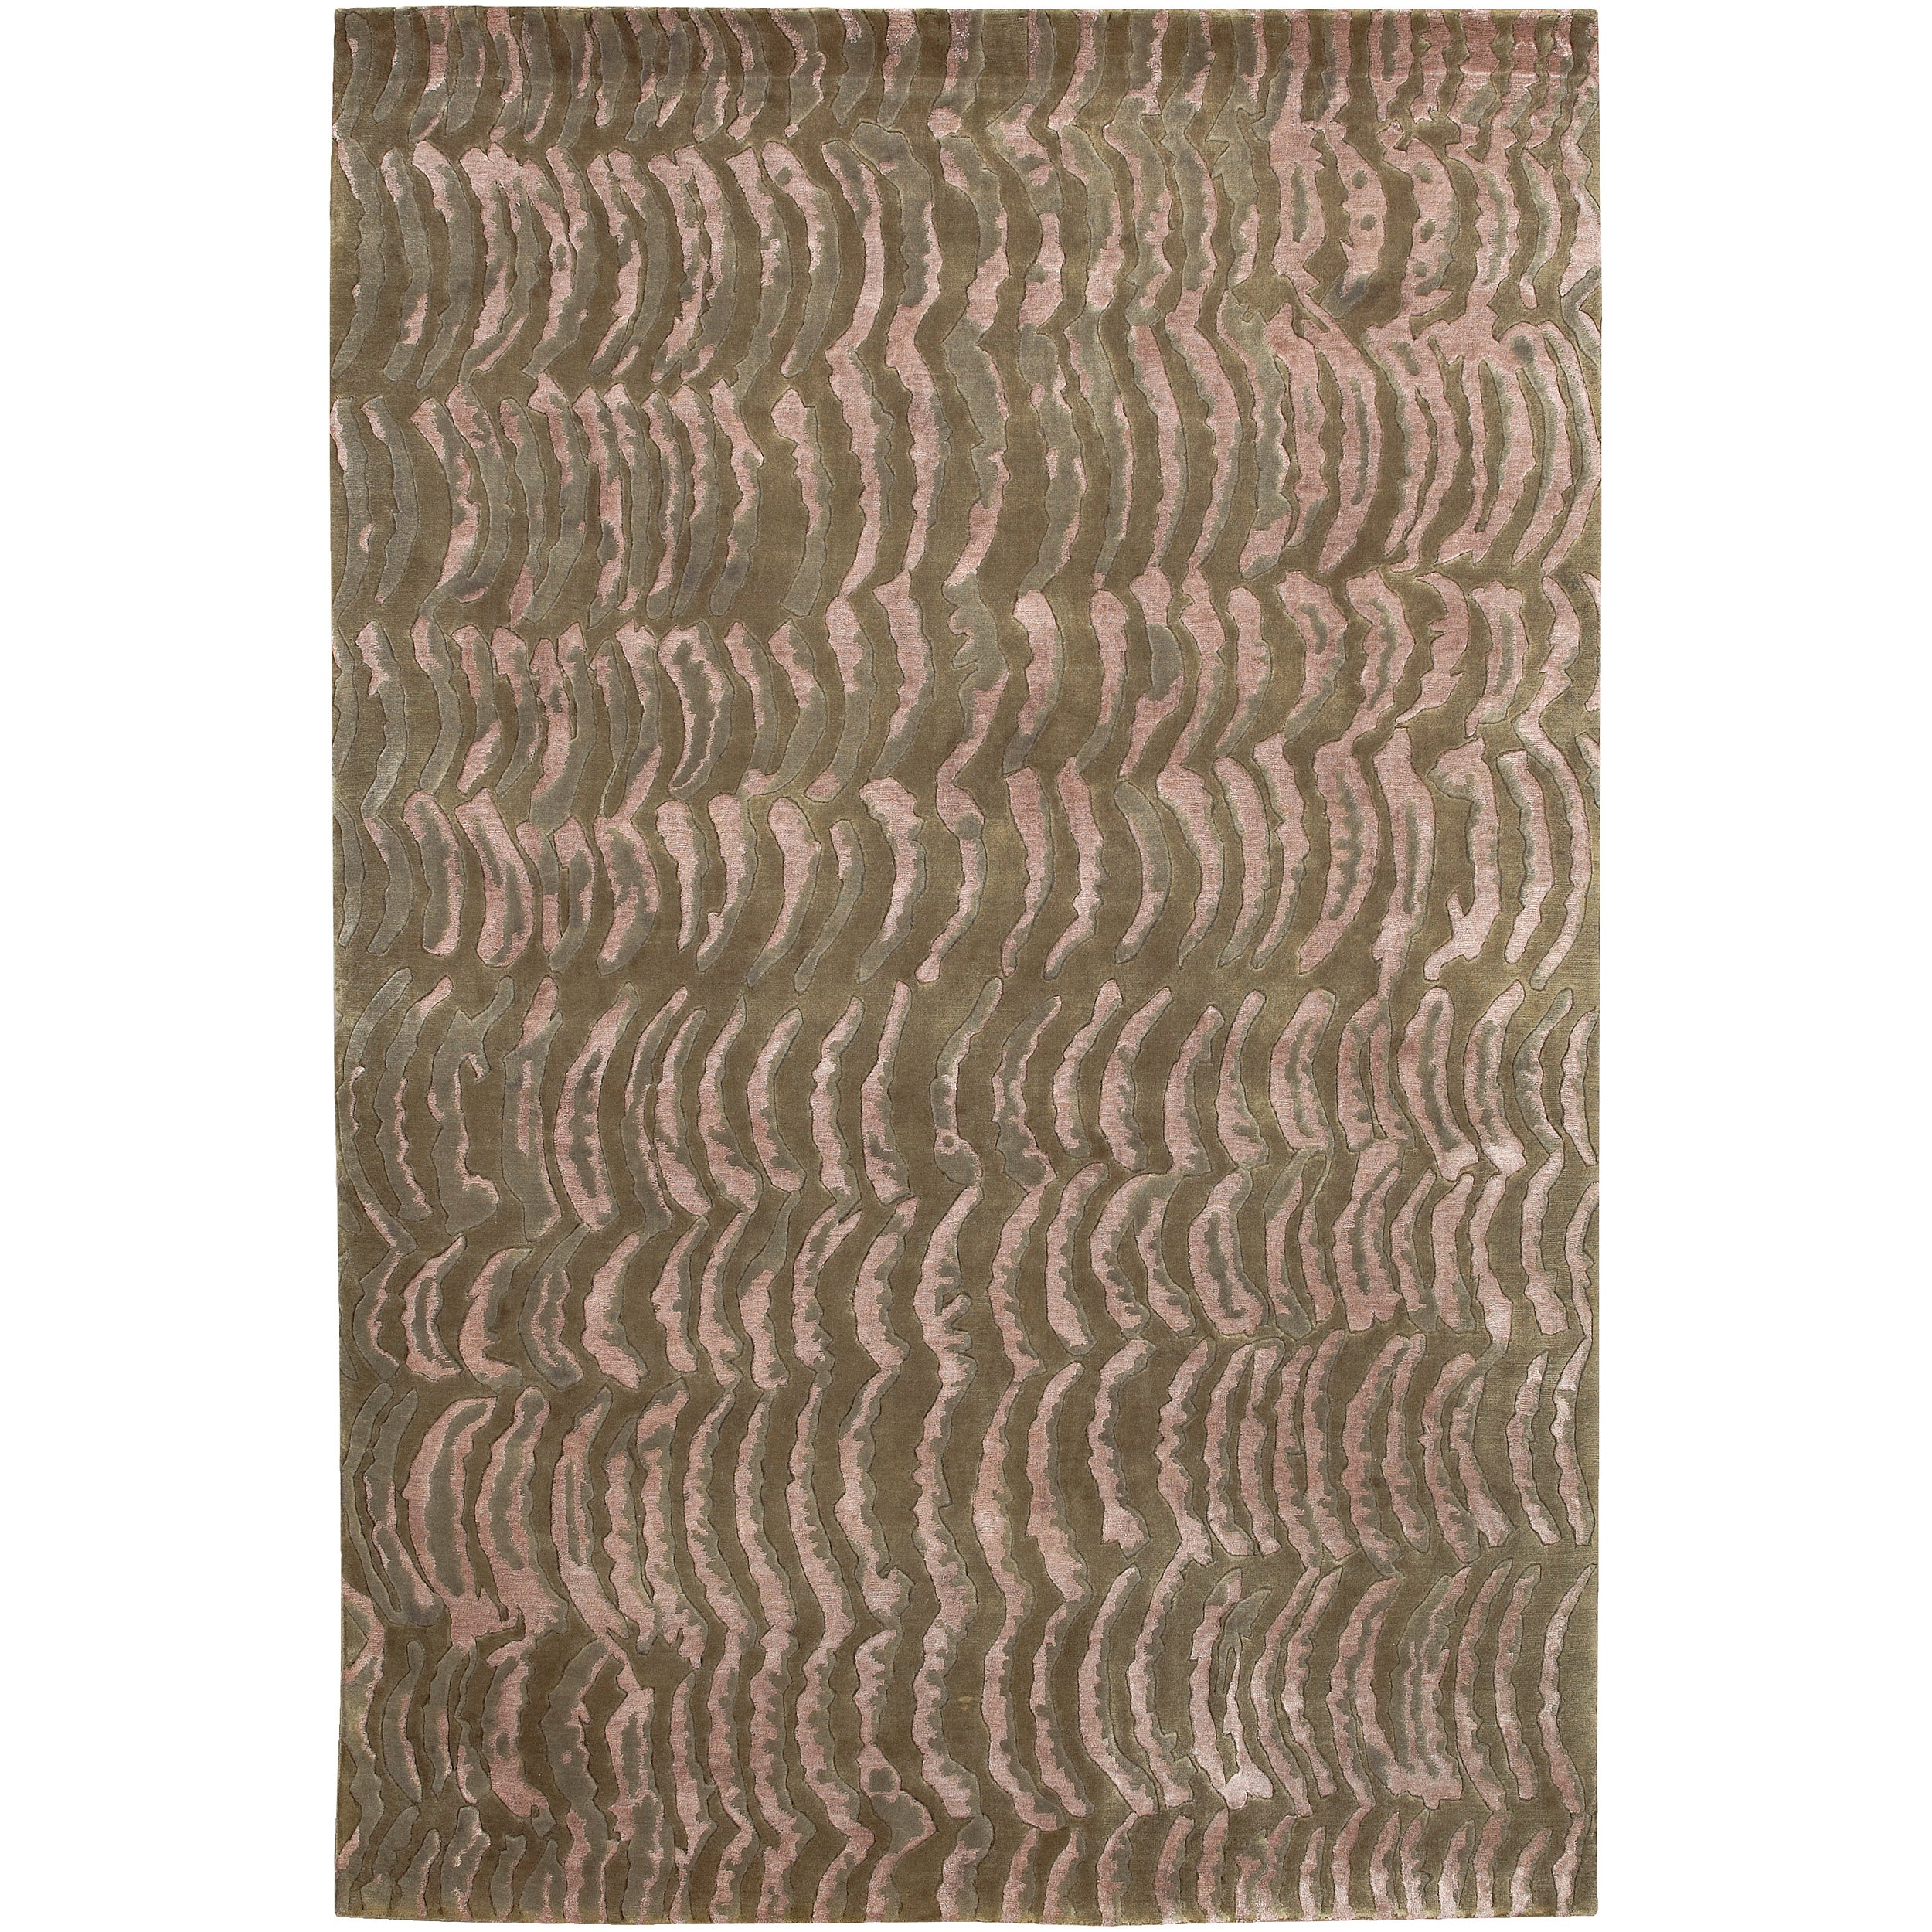 Rose/Moss Hand-Knotted Multicolored Vilas Abstract Design Wool Rug (4' x 6')